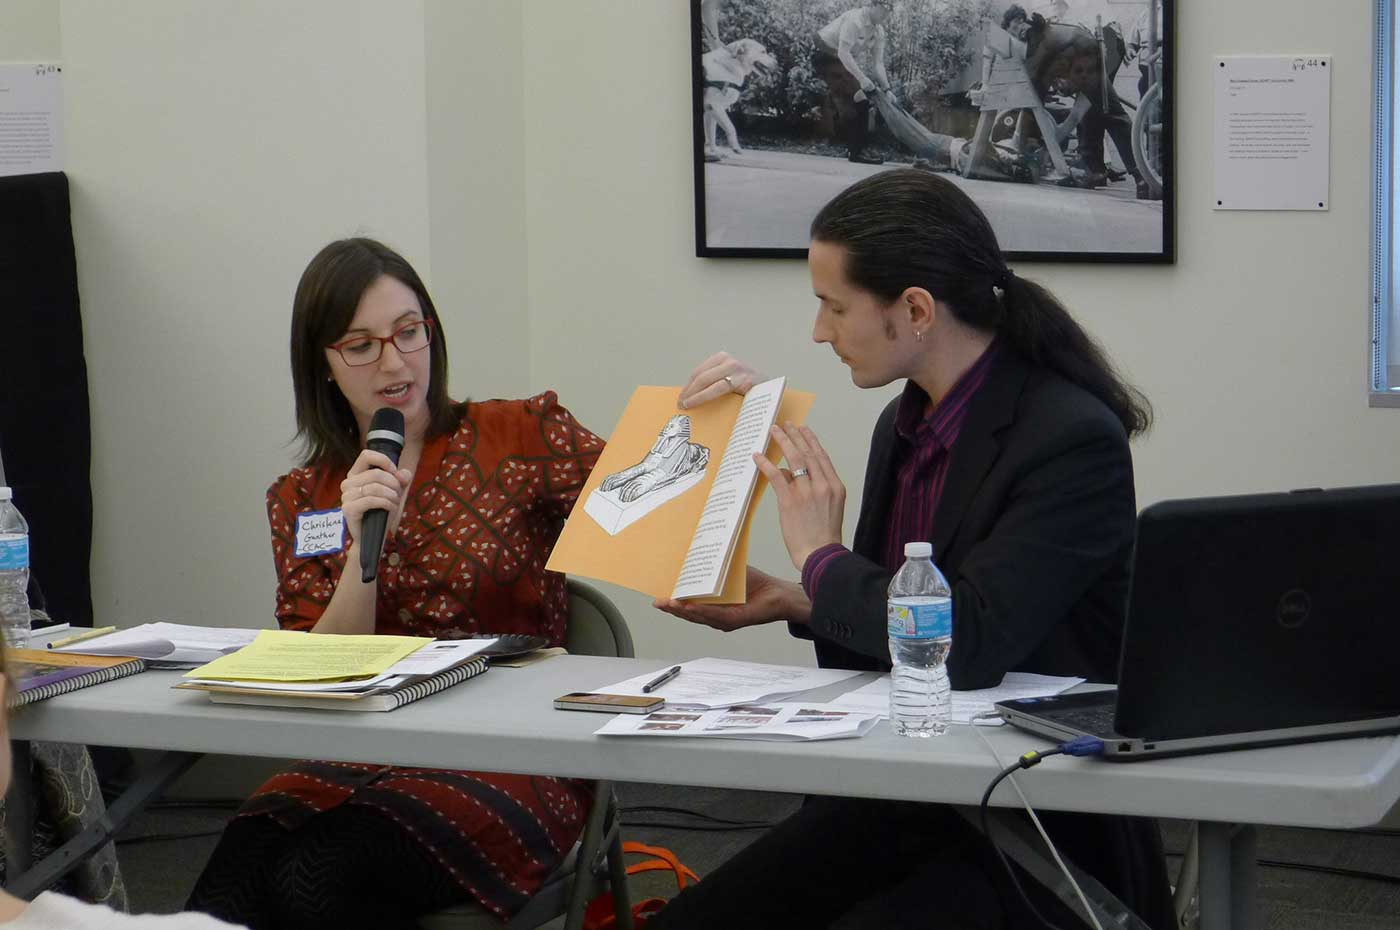 Photo of Christena Gunther holding up a document during a presentation.